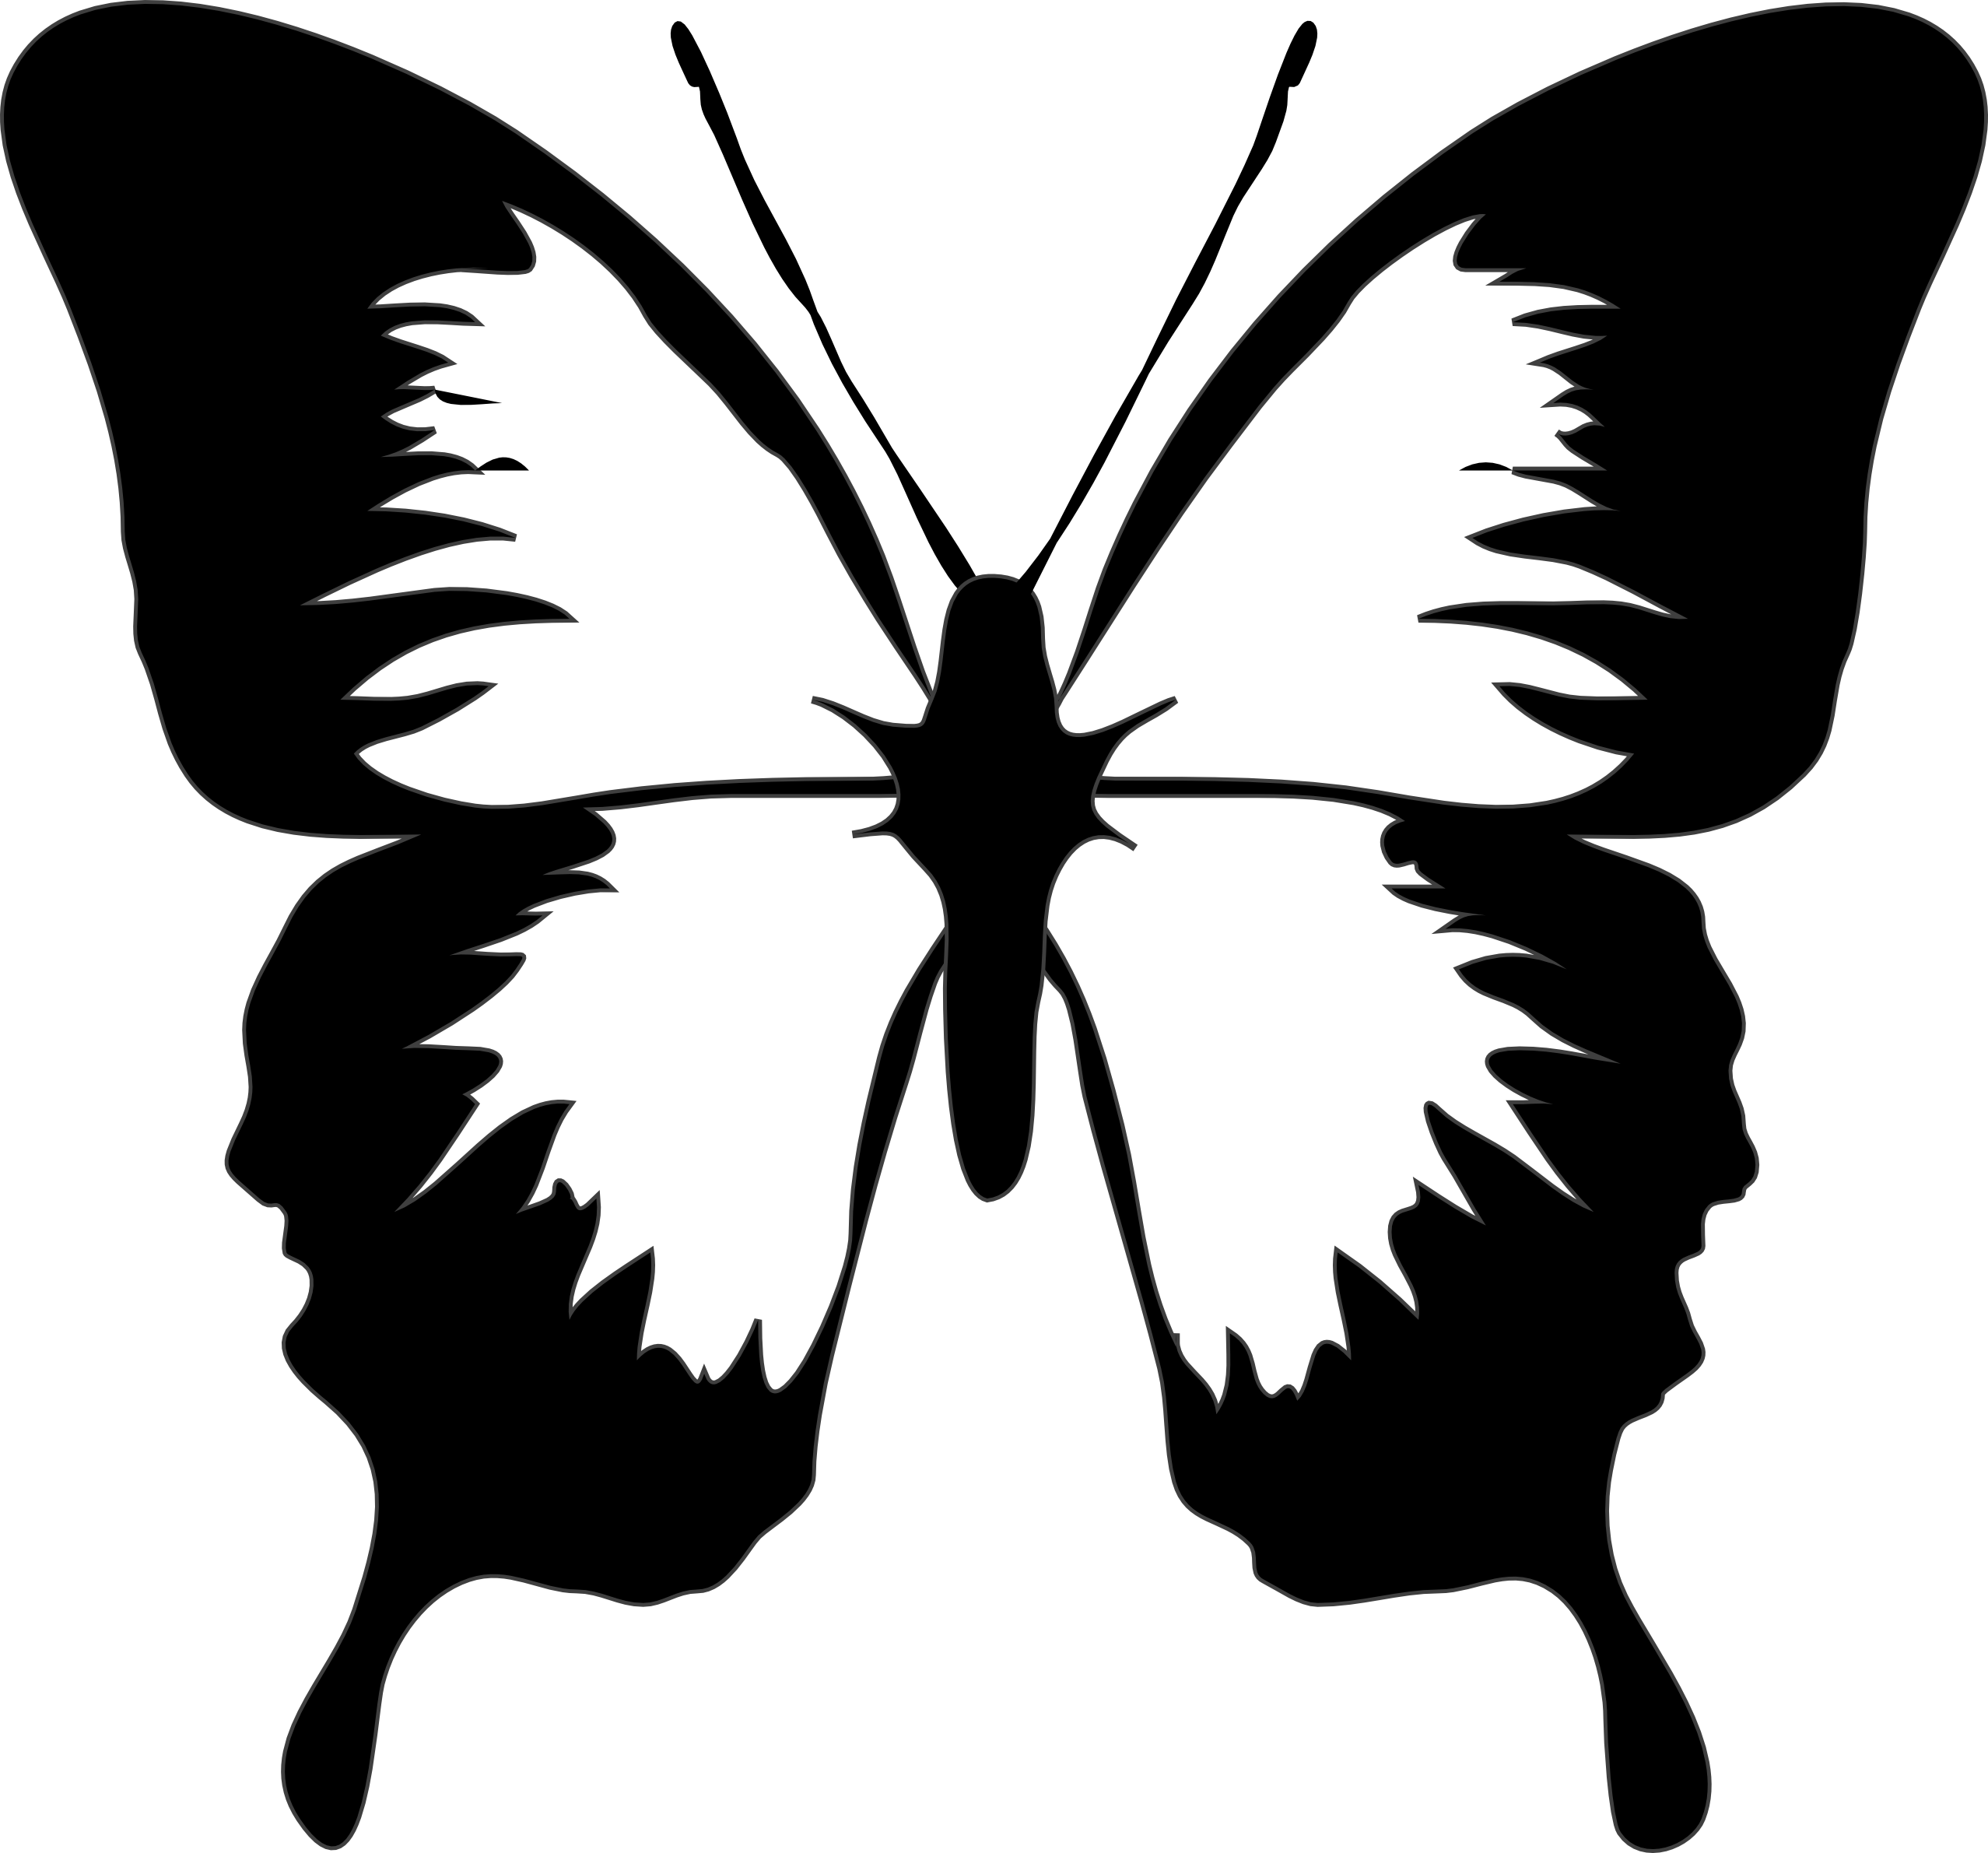 Black And White Butterfly | Free Downloa-Black And White Butterfly | Free Download Clip Art | Free Clip Art ..-3